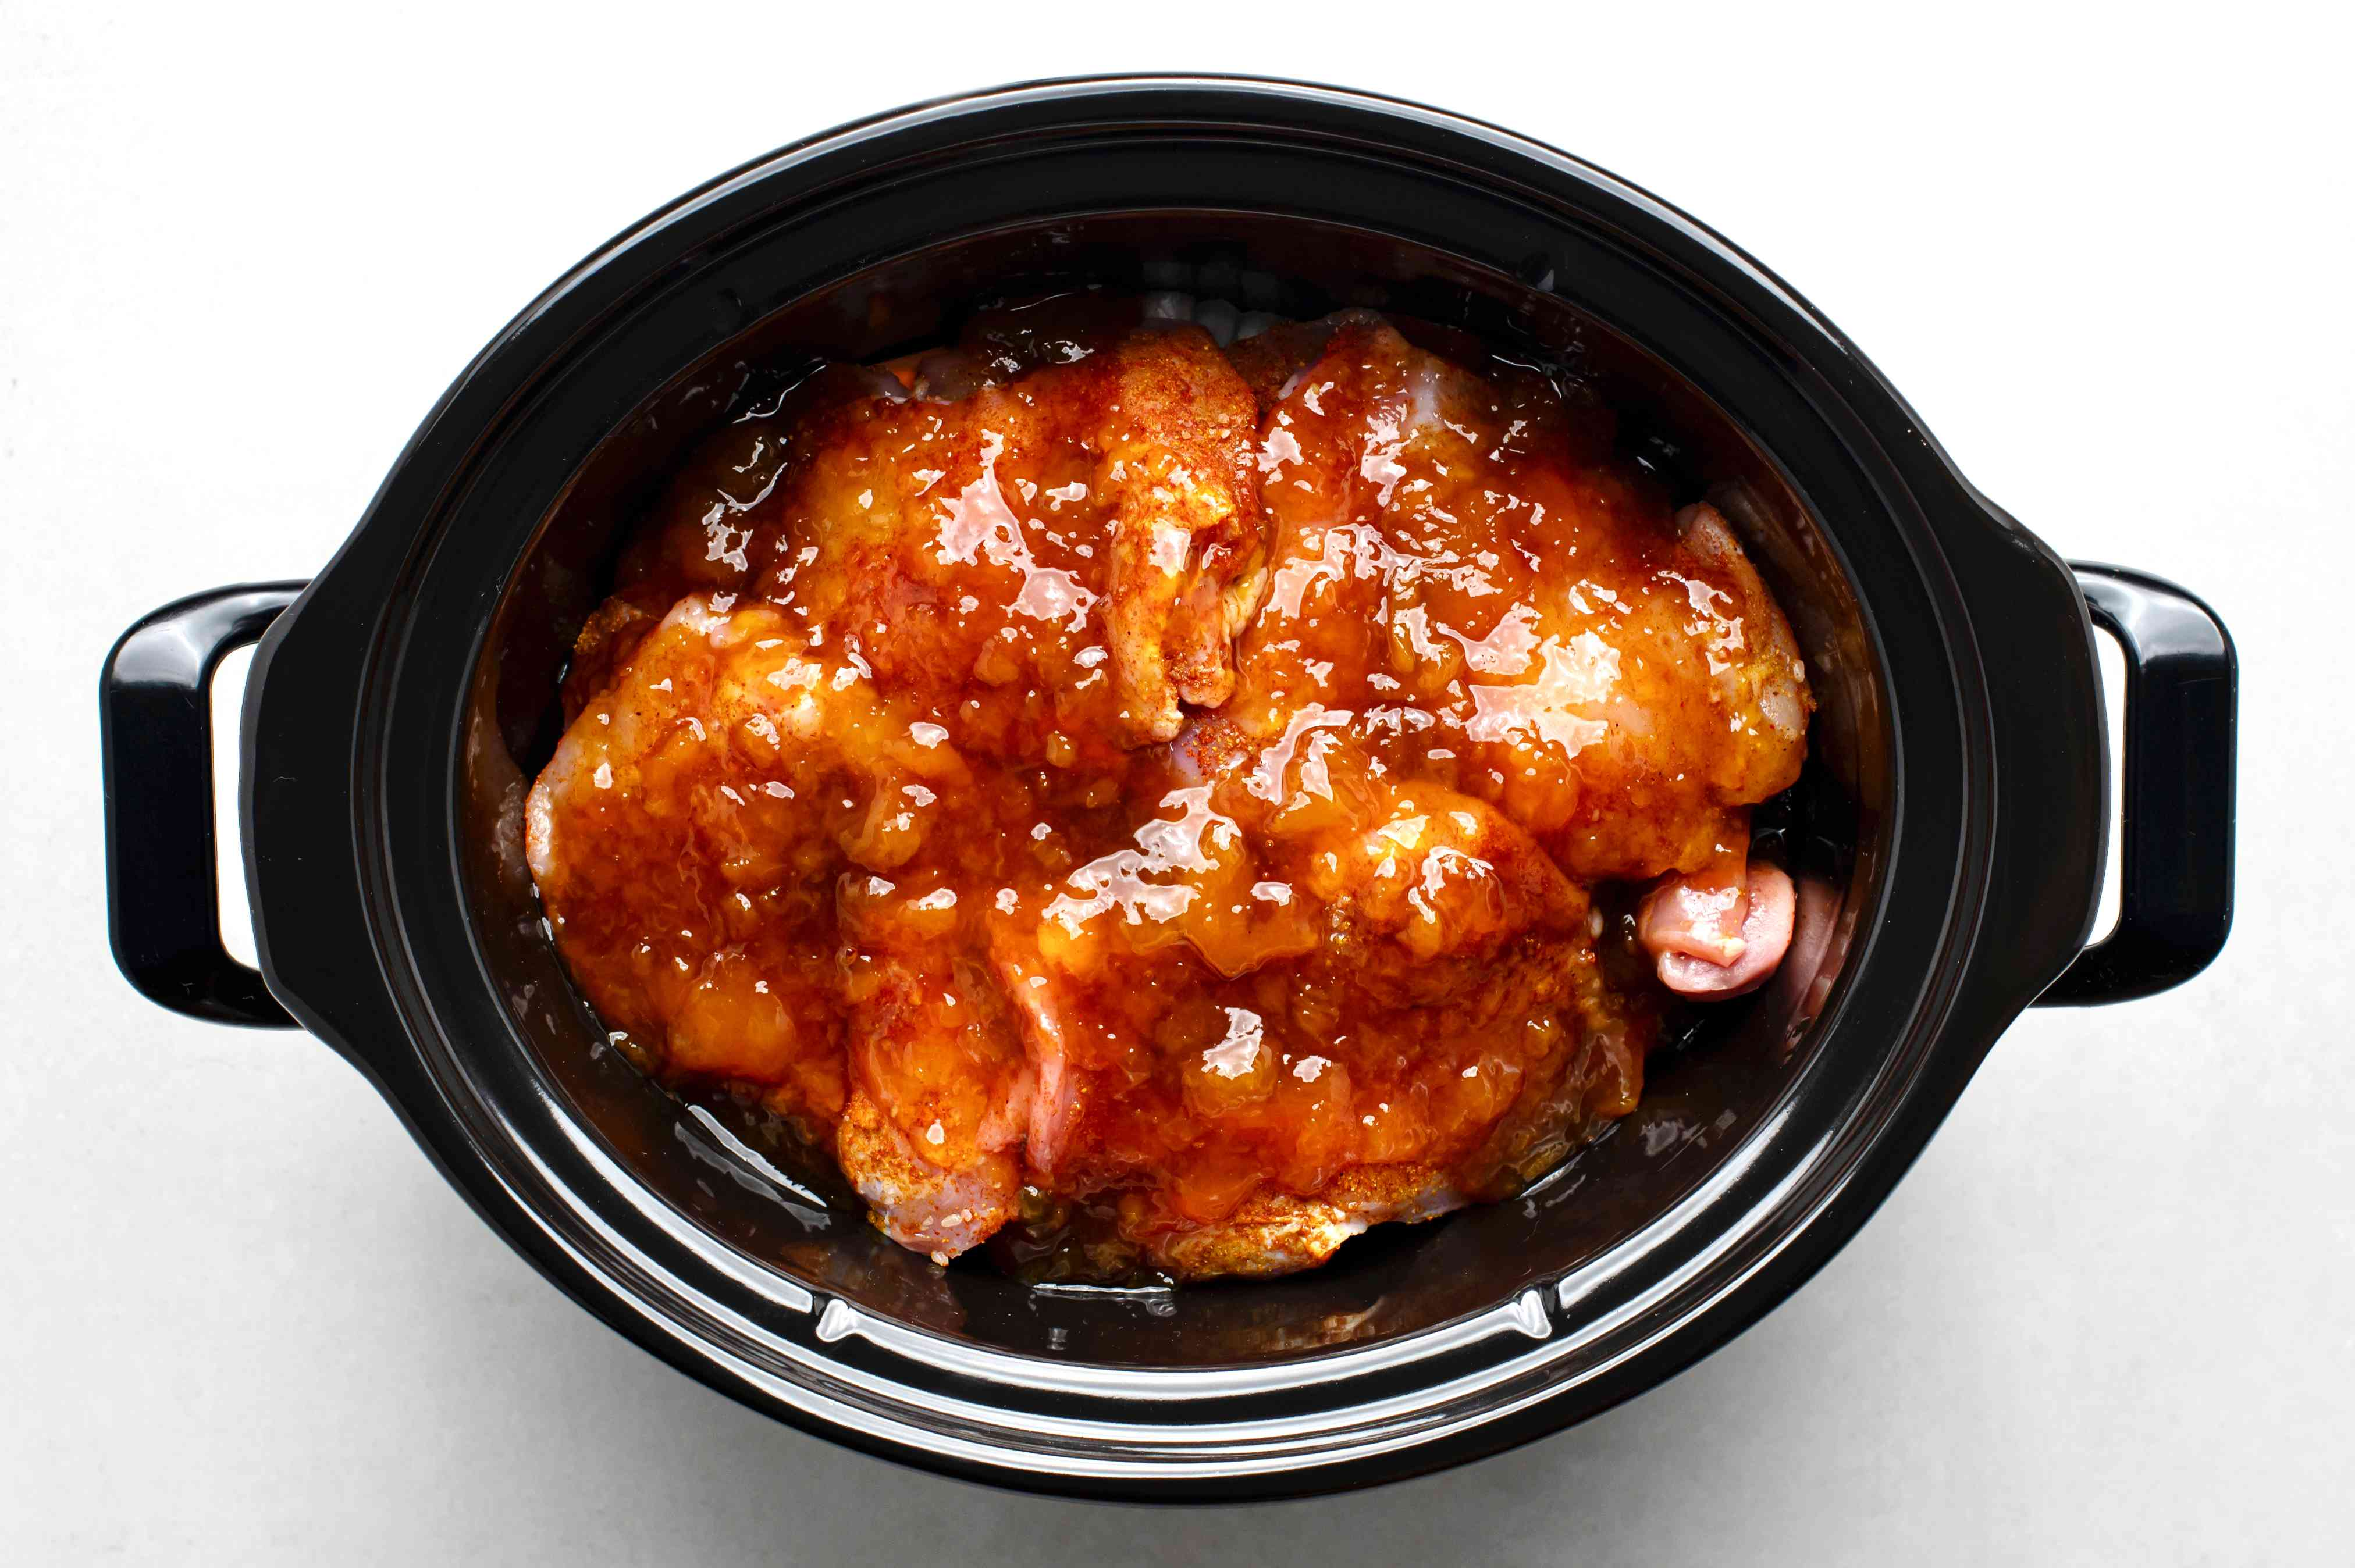 top the chicken with peach preserves, vinegar, and soy sauce